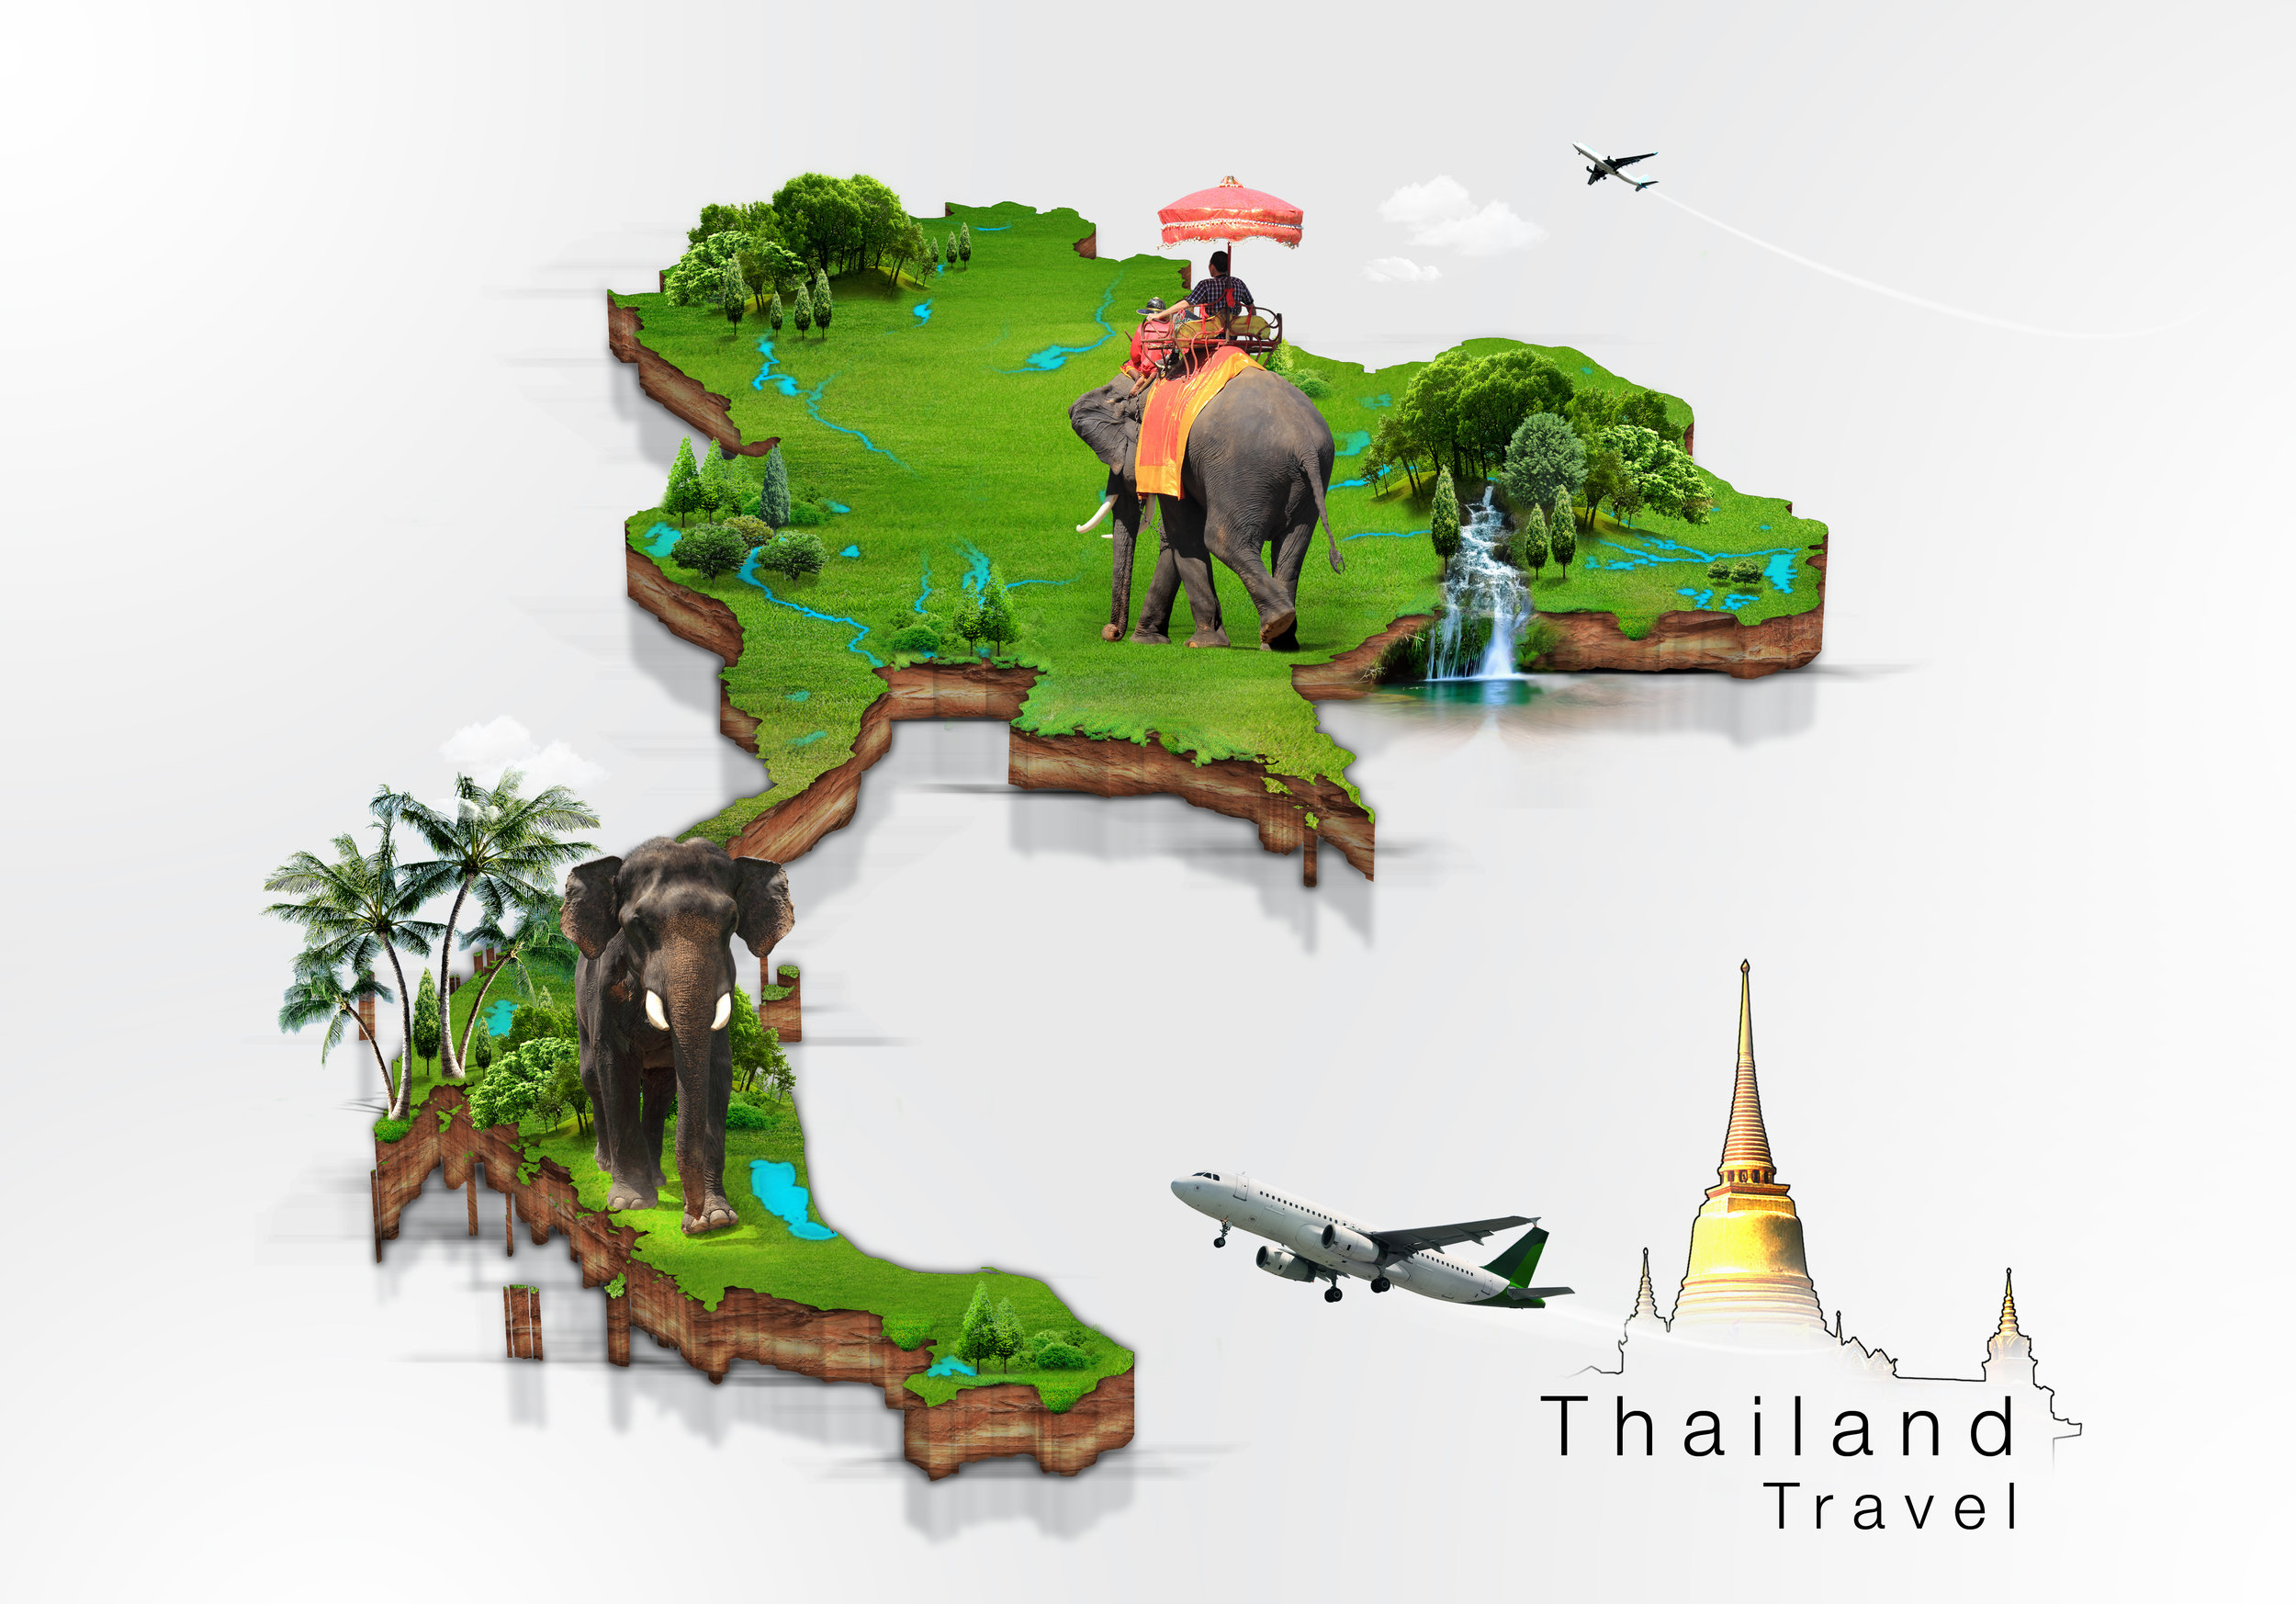 Chiang-Mai-Elephant-Riding-Exit-Plan-Retire-Abroad-Thailand-CNBC.jpg